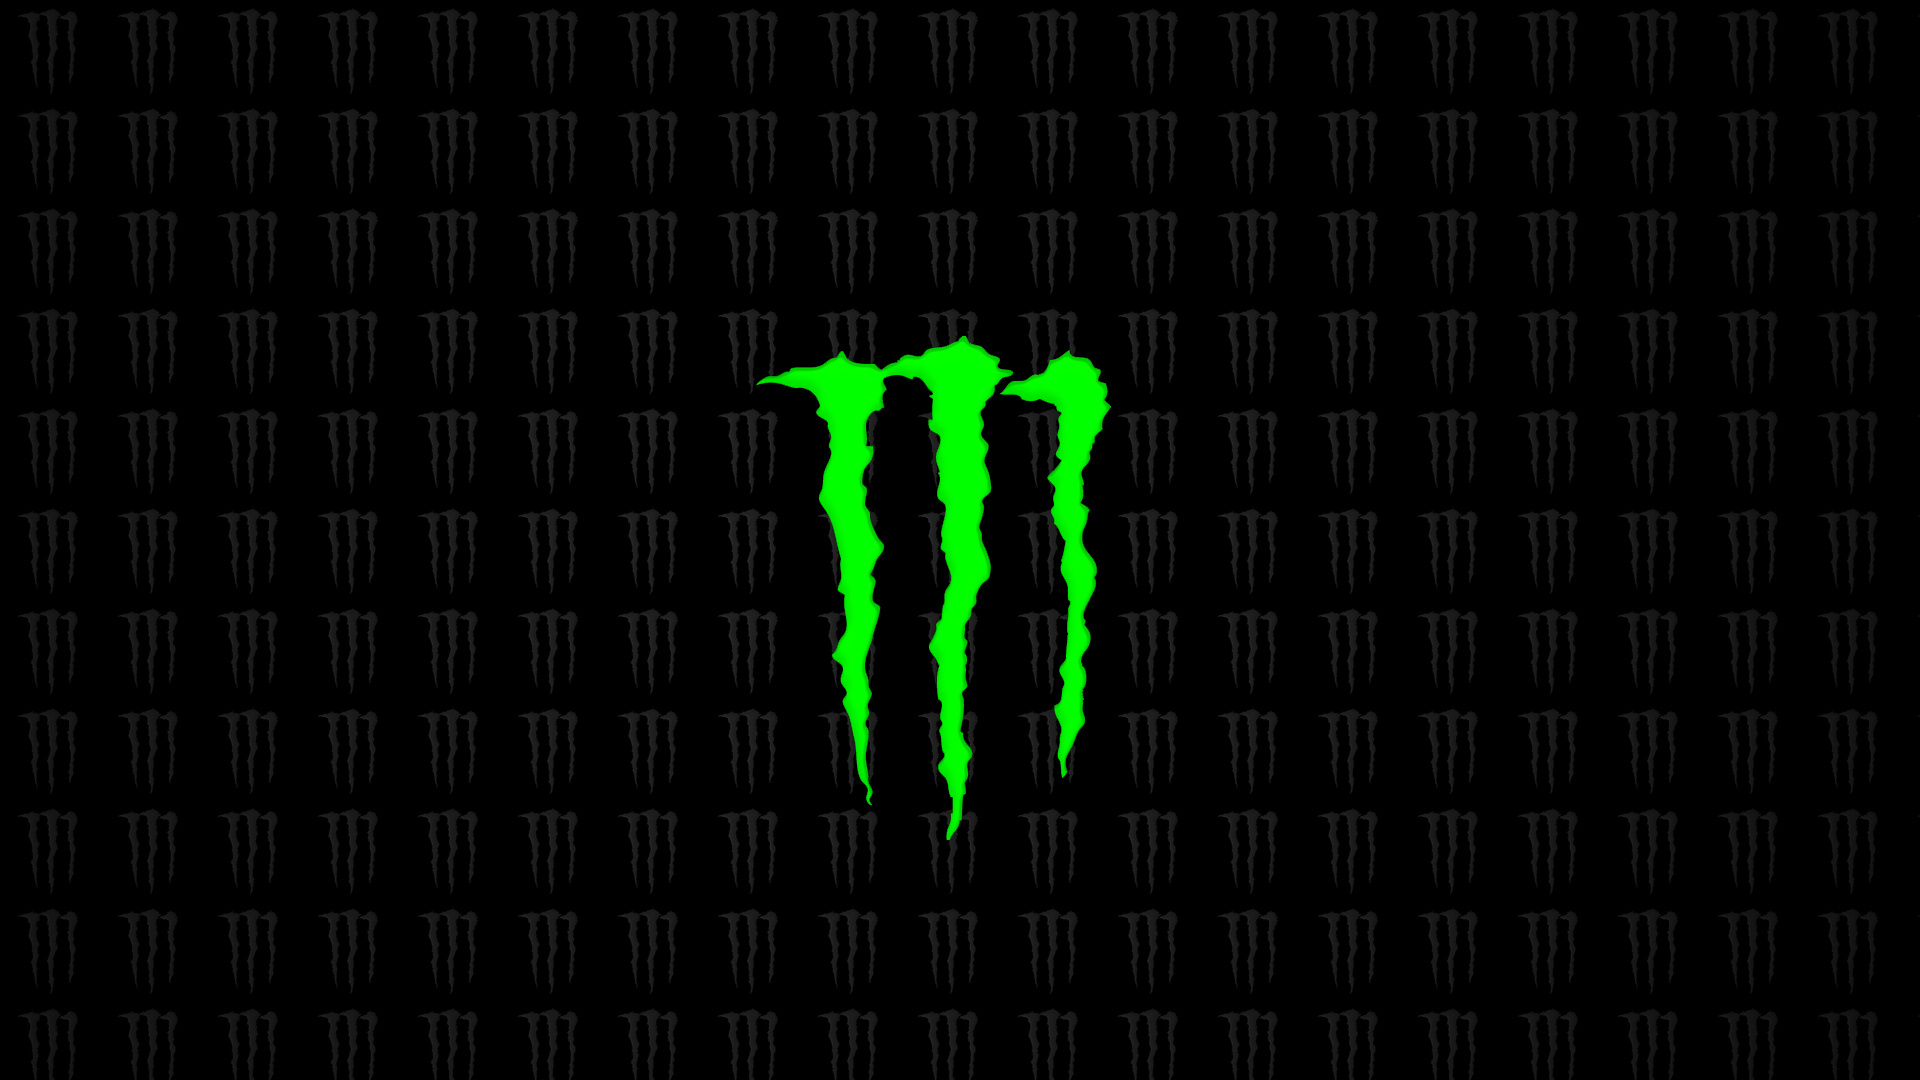 Monster Energy Wallpaper HD 1080p ImageBankbiz 1920x1080